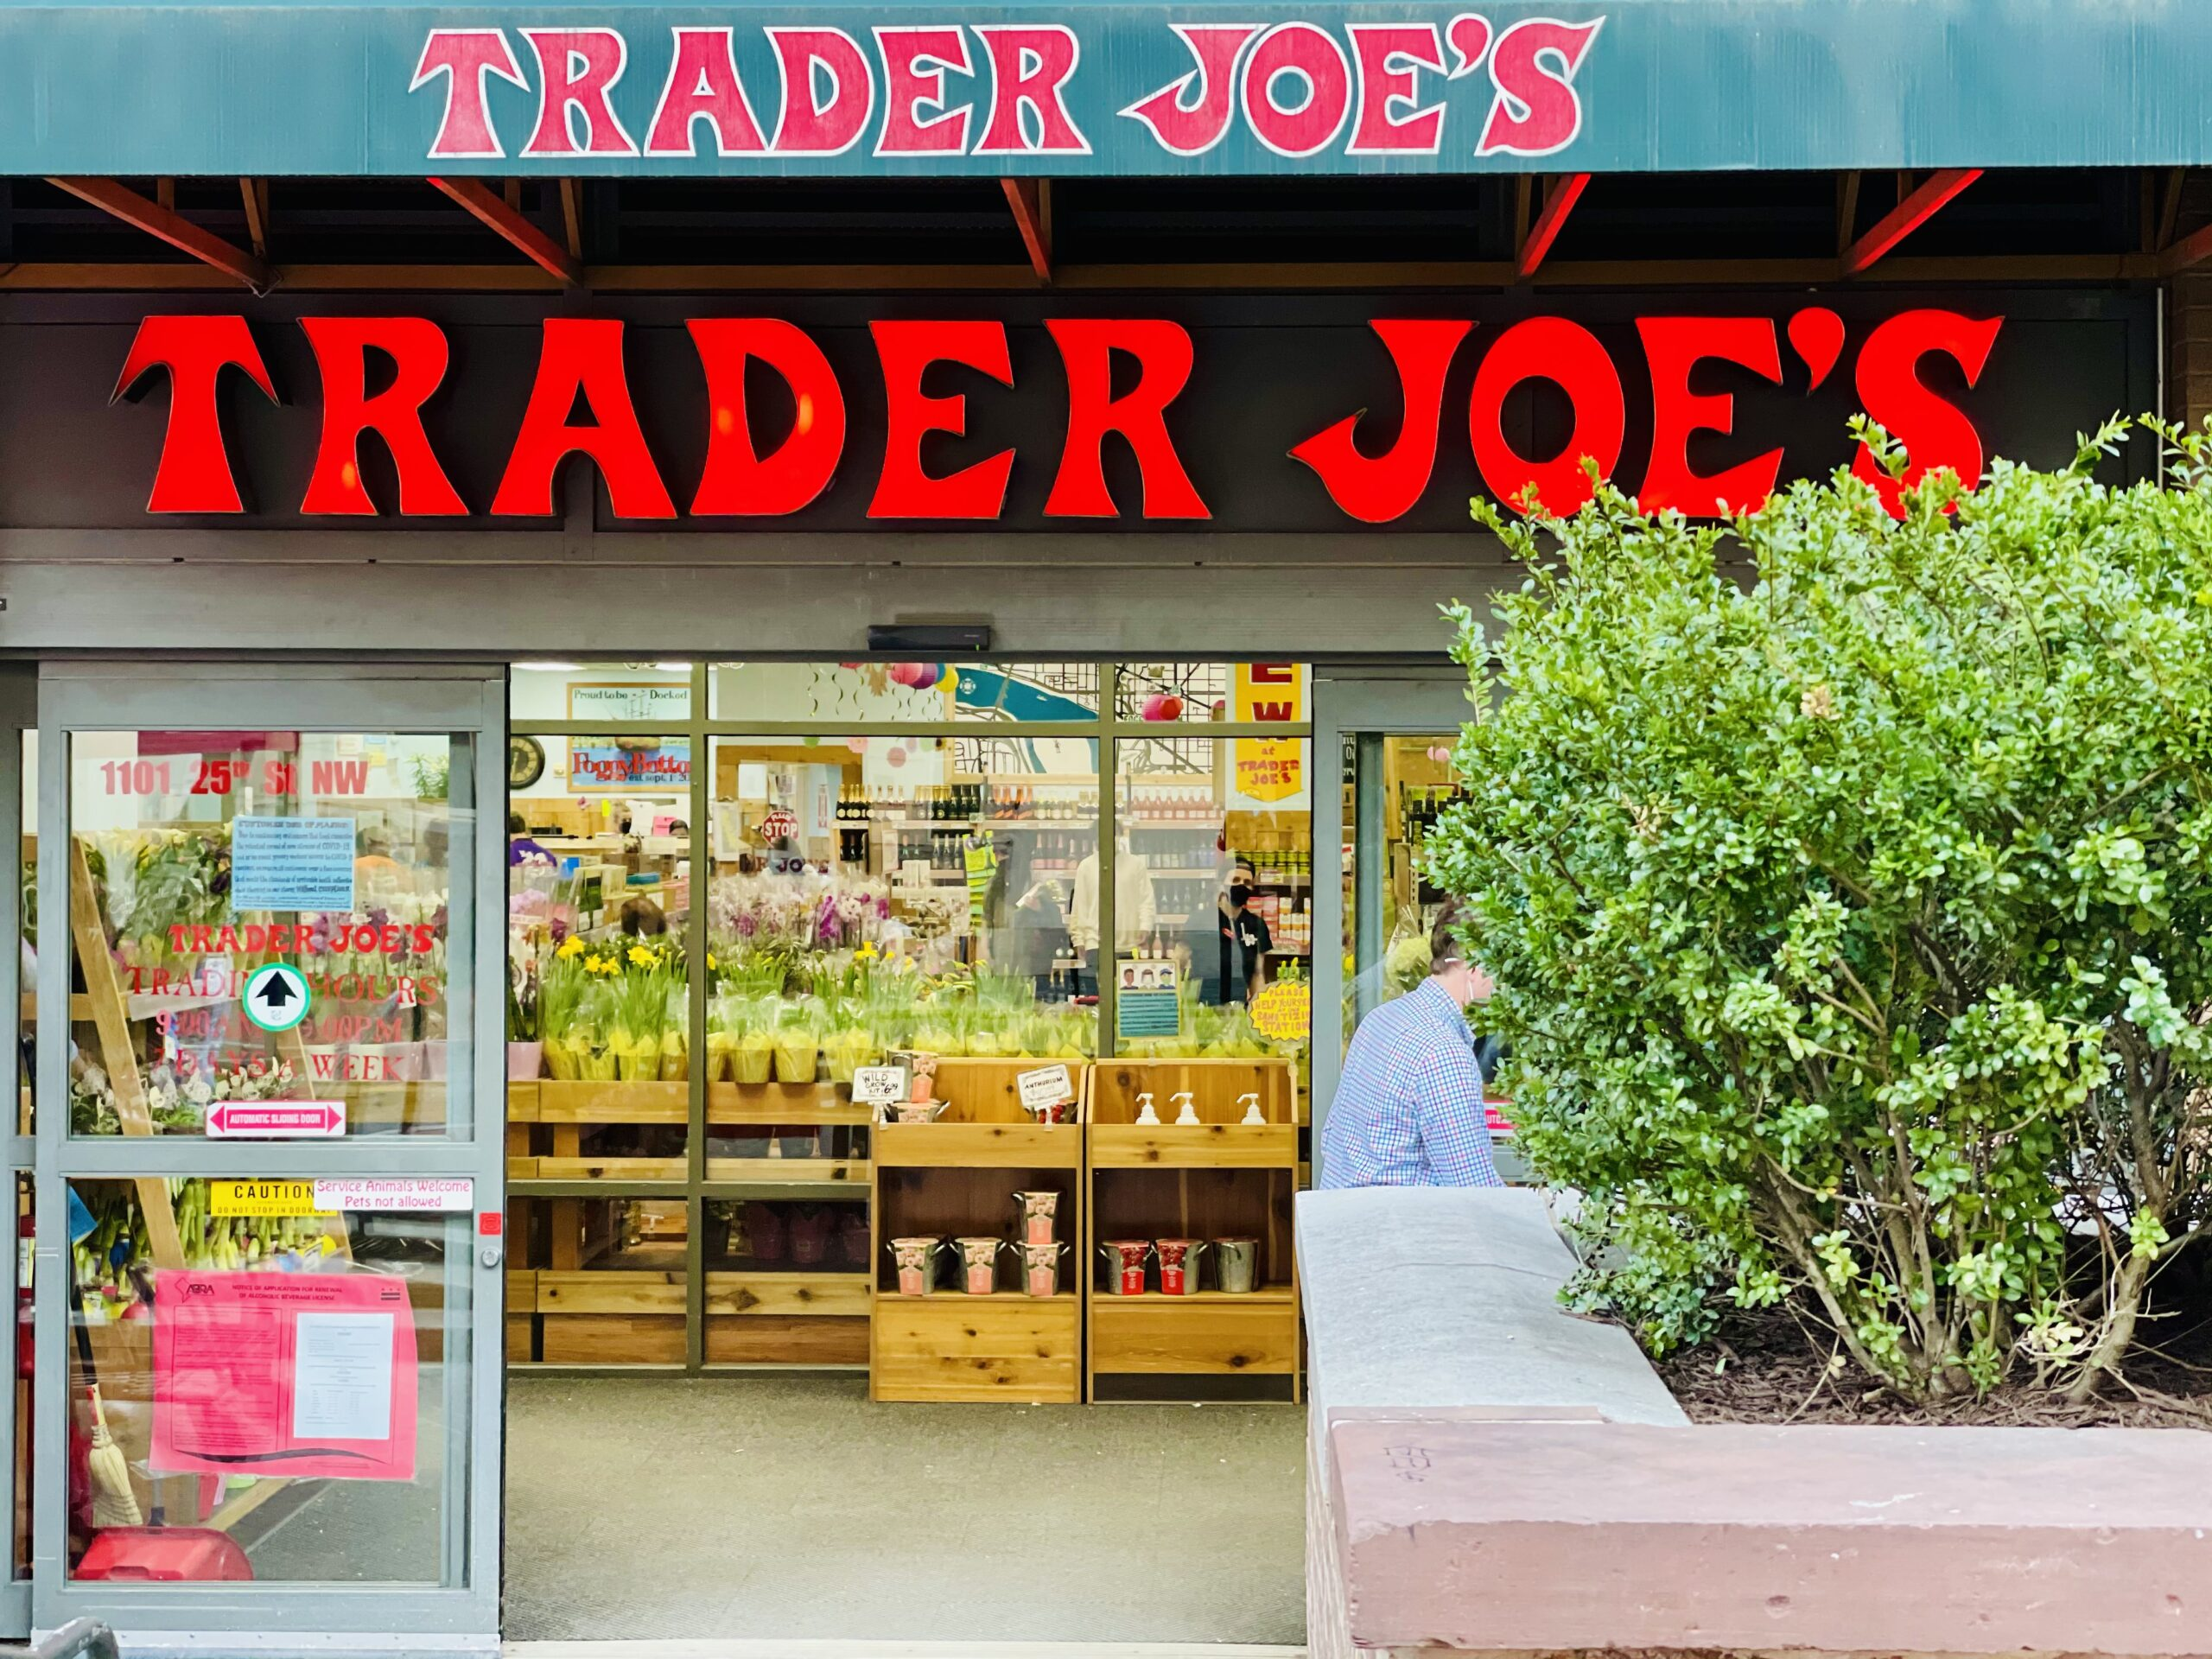 Top 10 Trader Joe's items for people who don't have time to cook